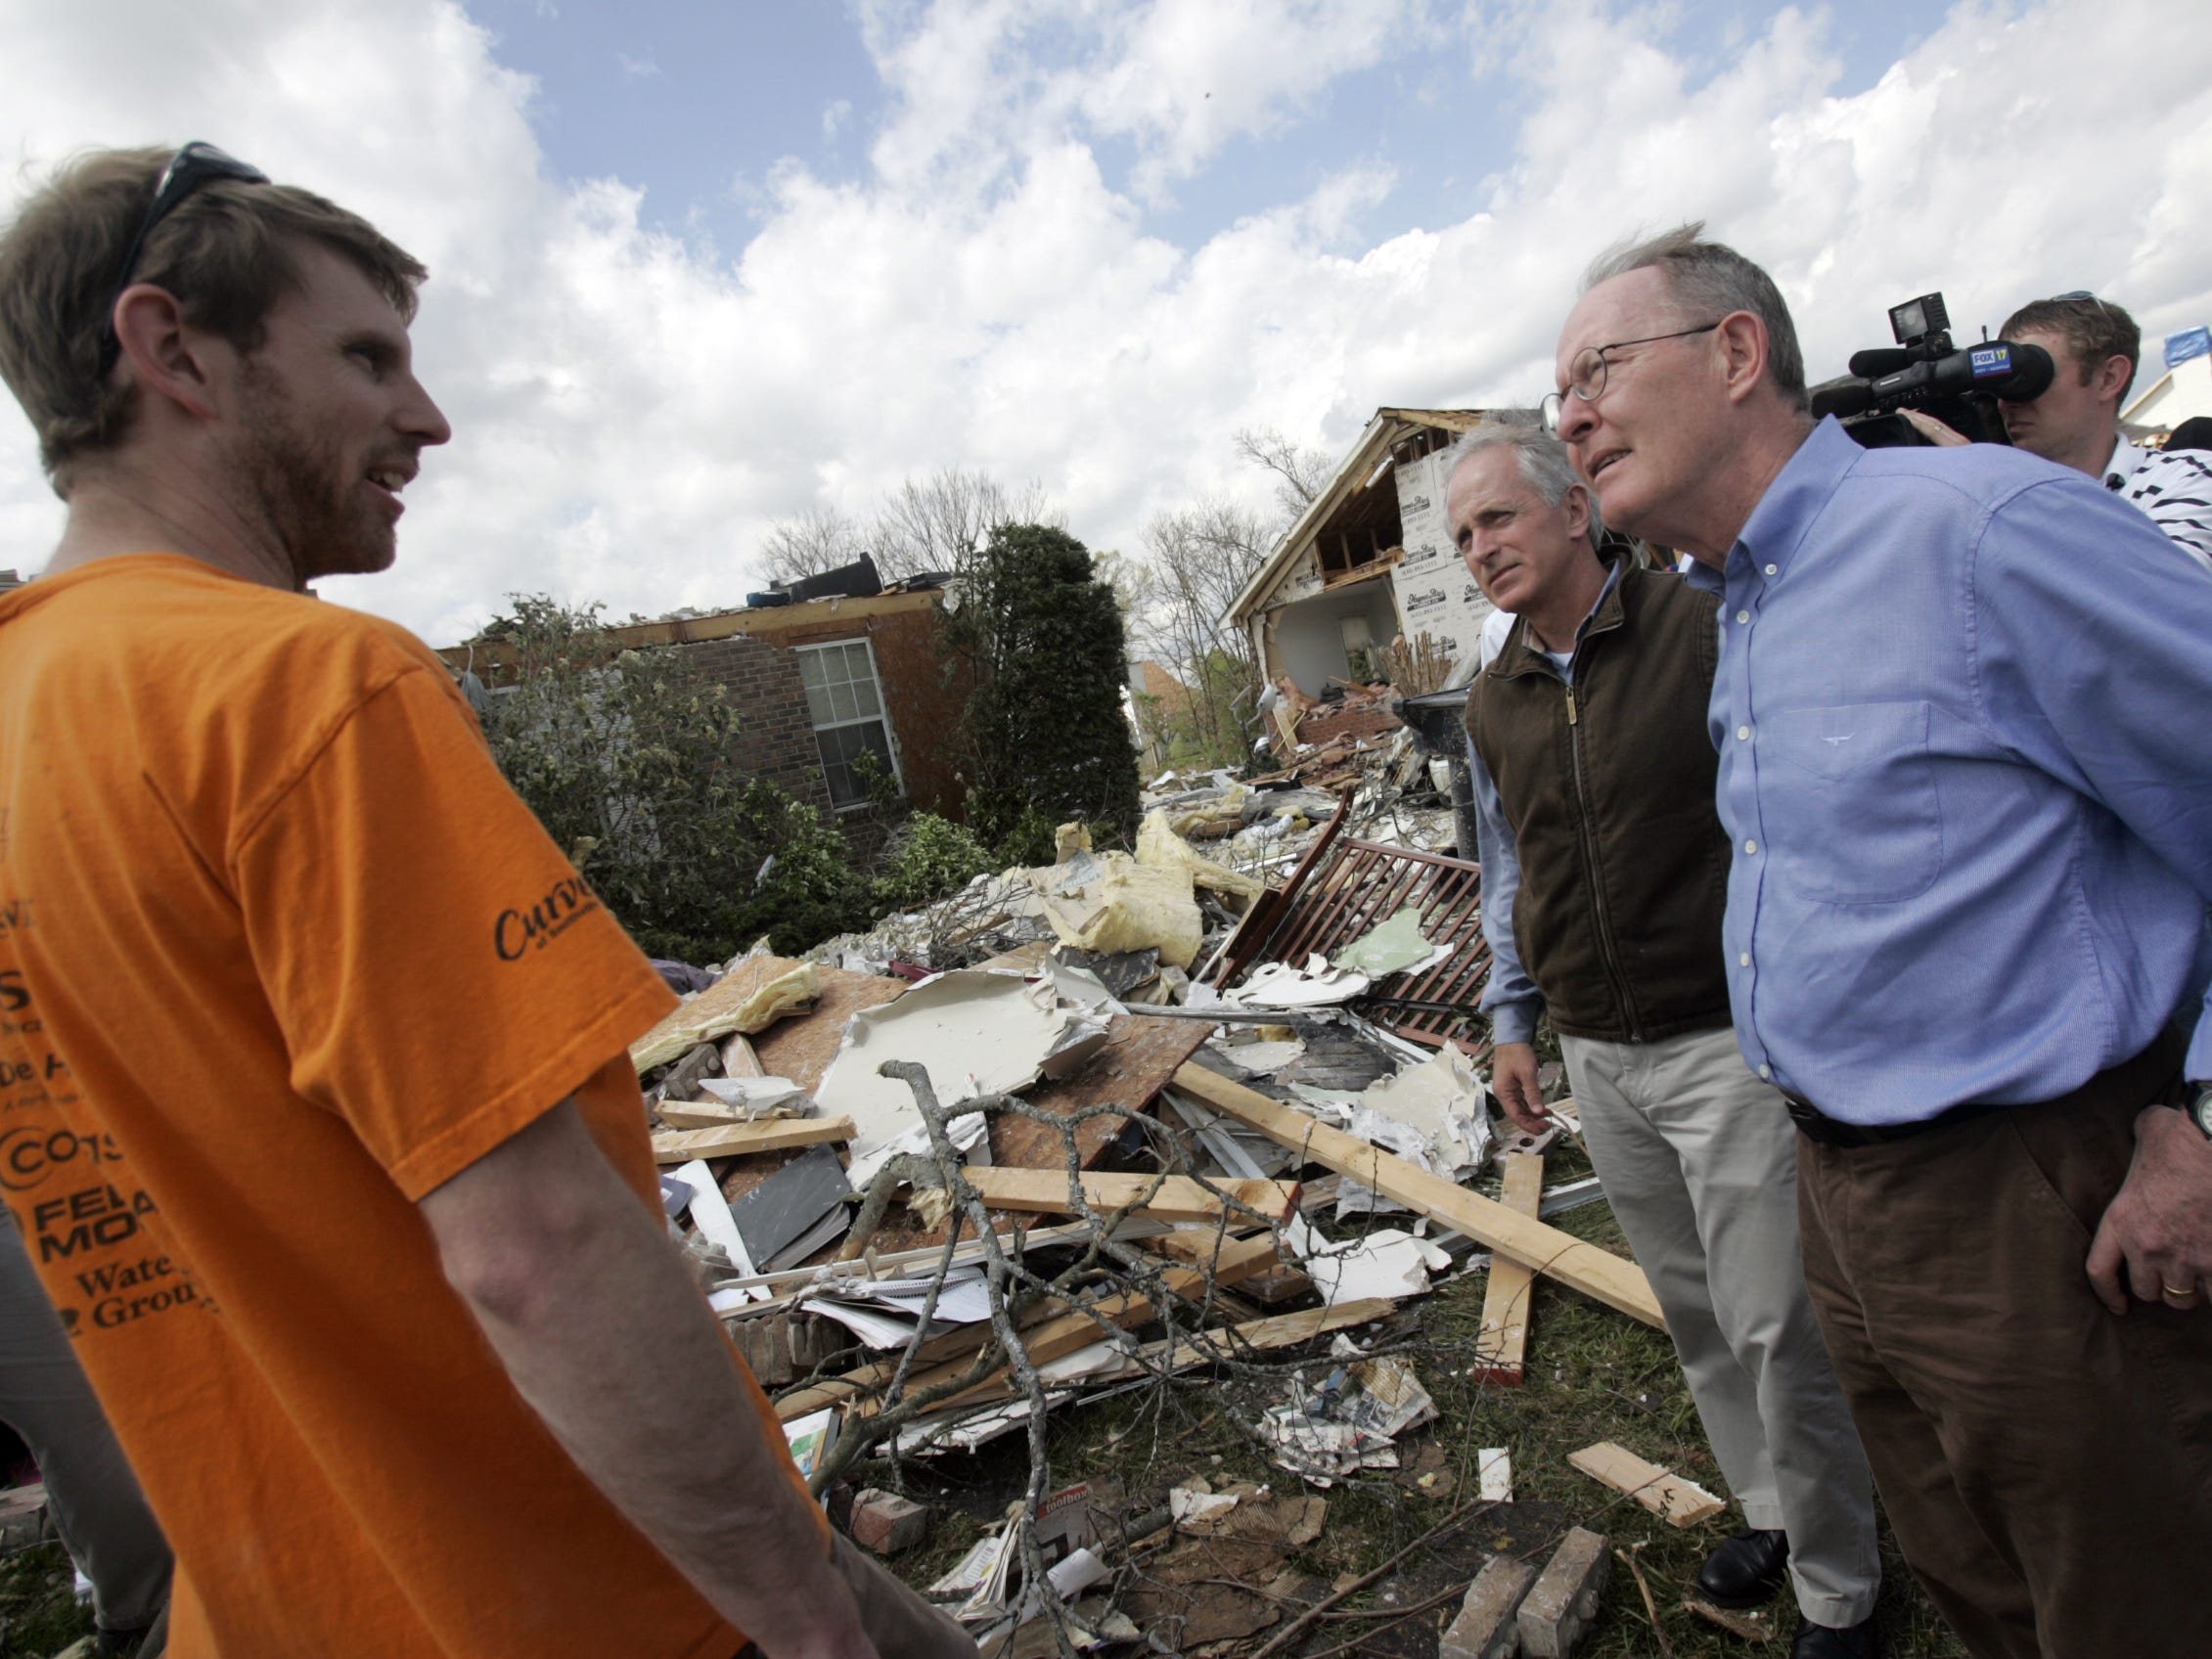 DNJ photo by Aaron Thompson Philip Smith, left, talks with Senators Bob Corker, center, and Lamar Alexander as they tour some of the tornado damage in the Haynes Drive area.